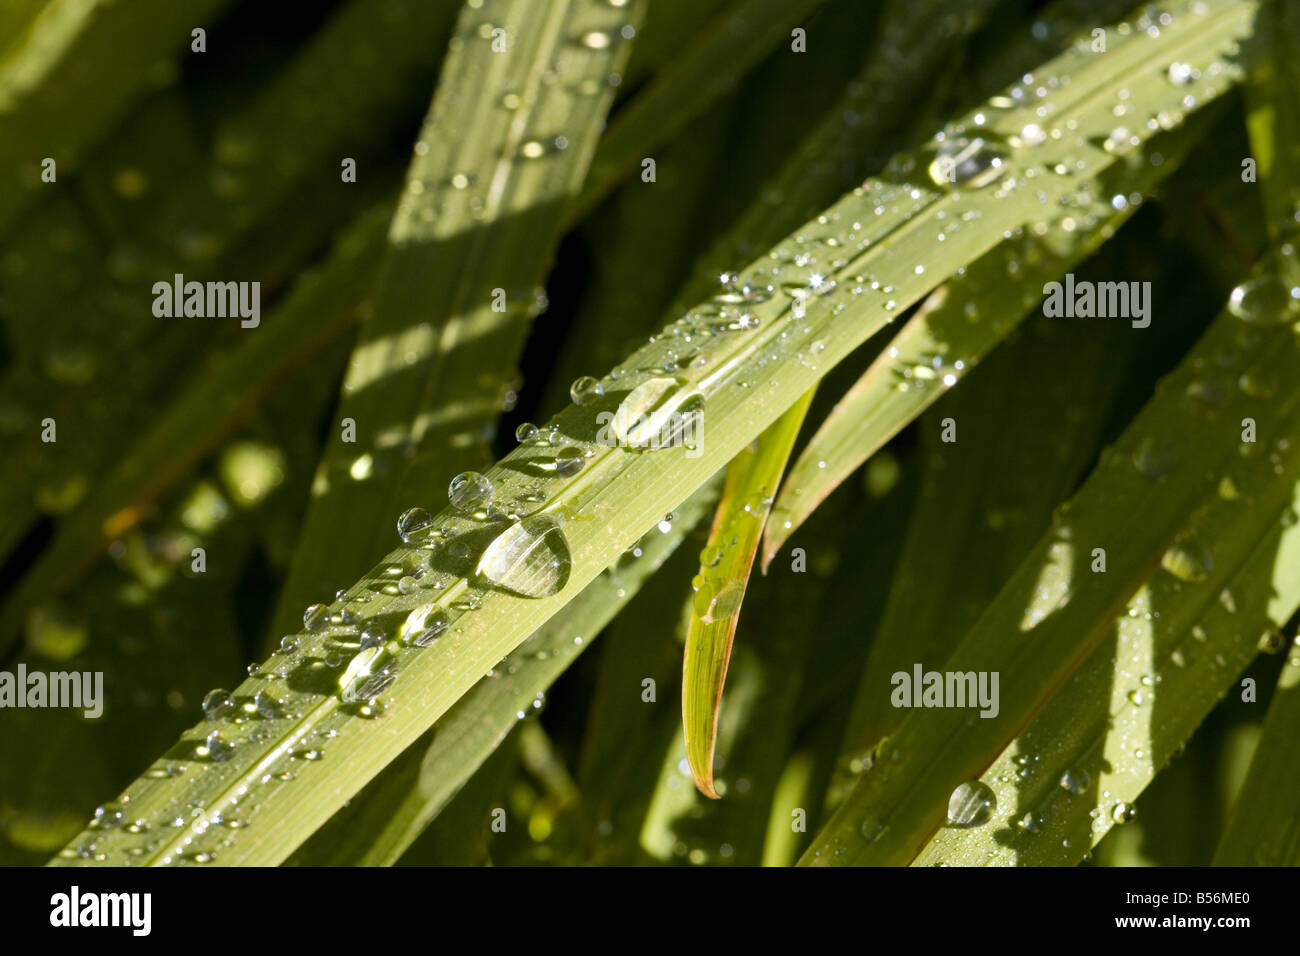 Dew on stalks of grass - Stock Image